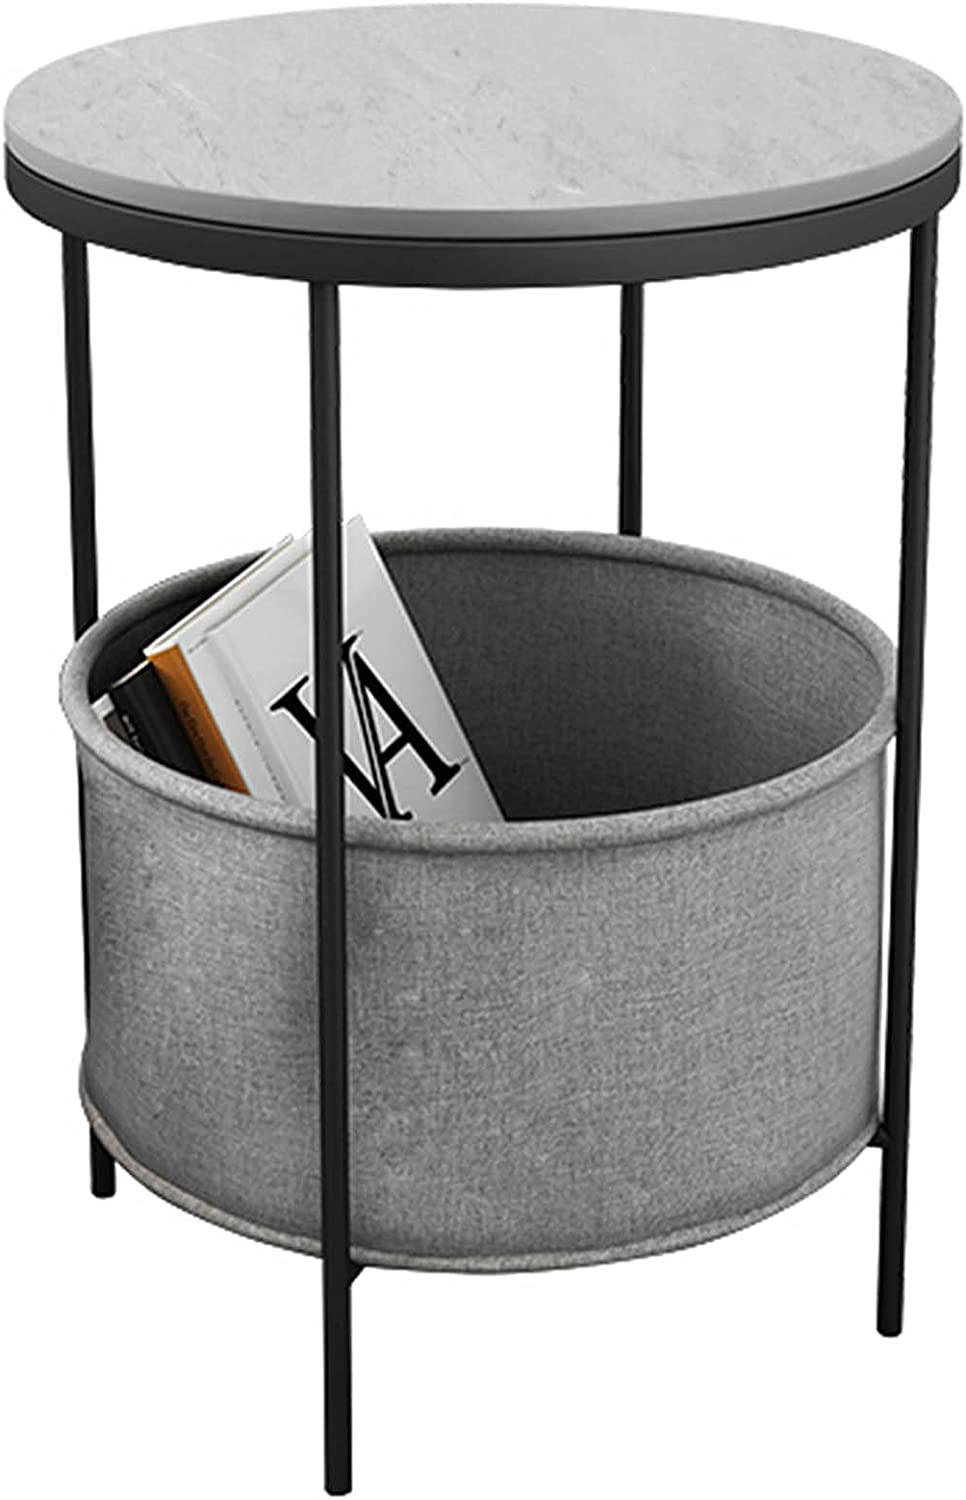 WUDAXIAN Modern Double Layer Round Coffee with Table San Jose Mall Black Metal Ranking TOP12